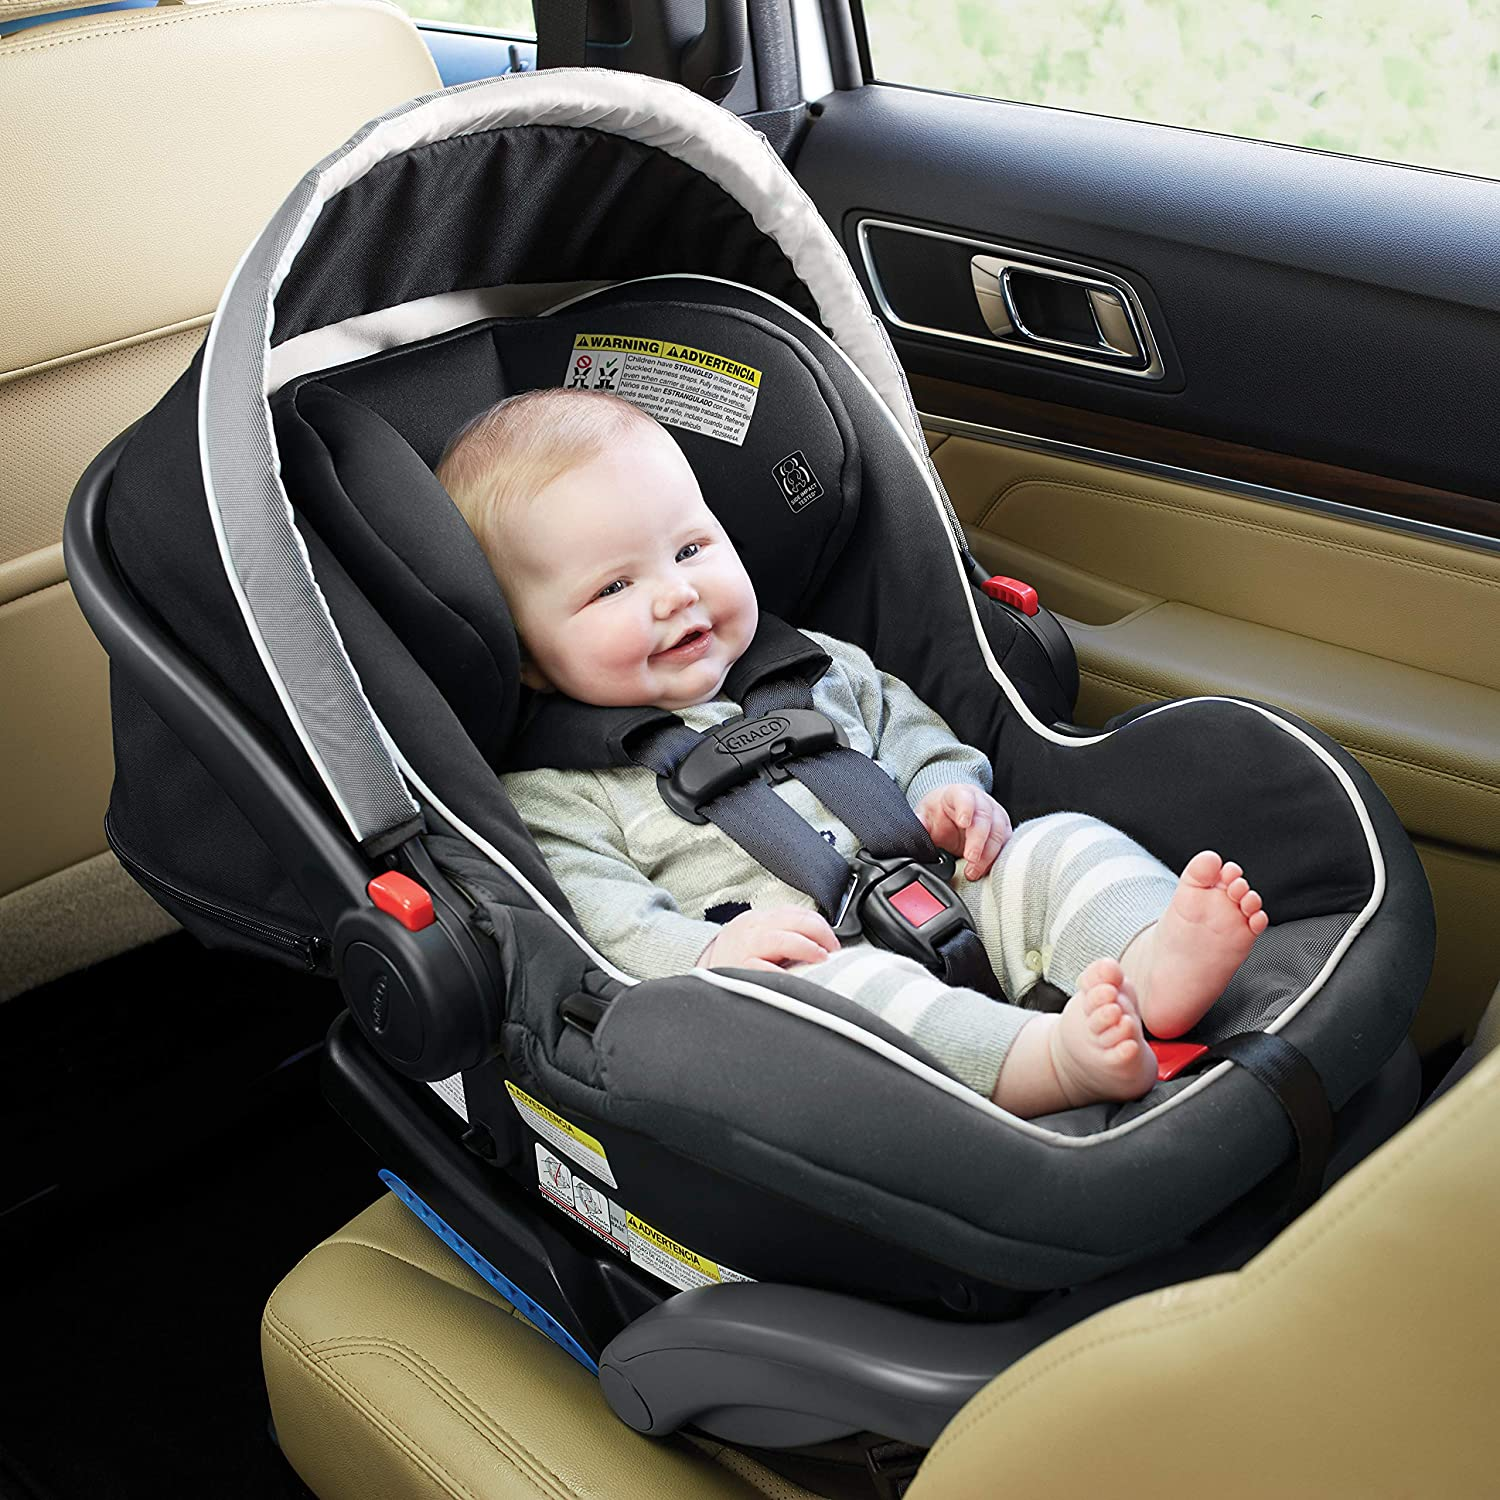 Best Infant Car Seat 2020.Top Safety Rated Infant Car Seats 2020